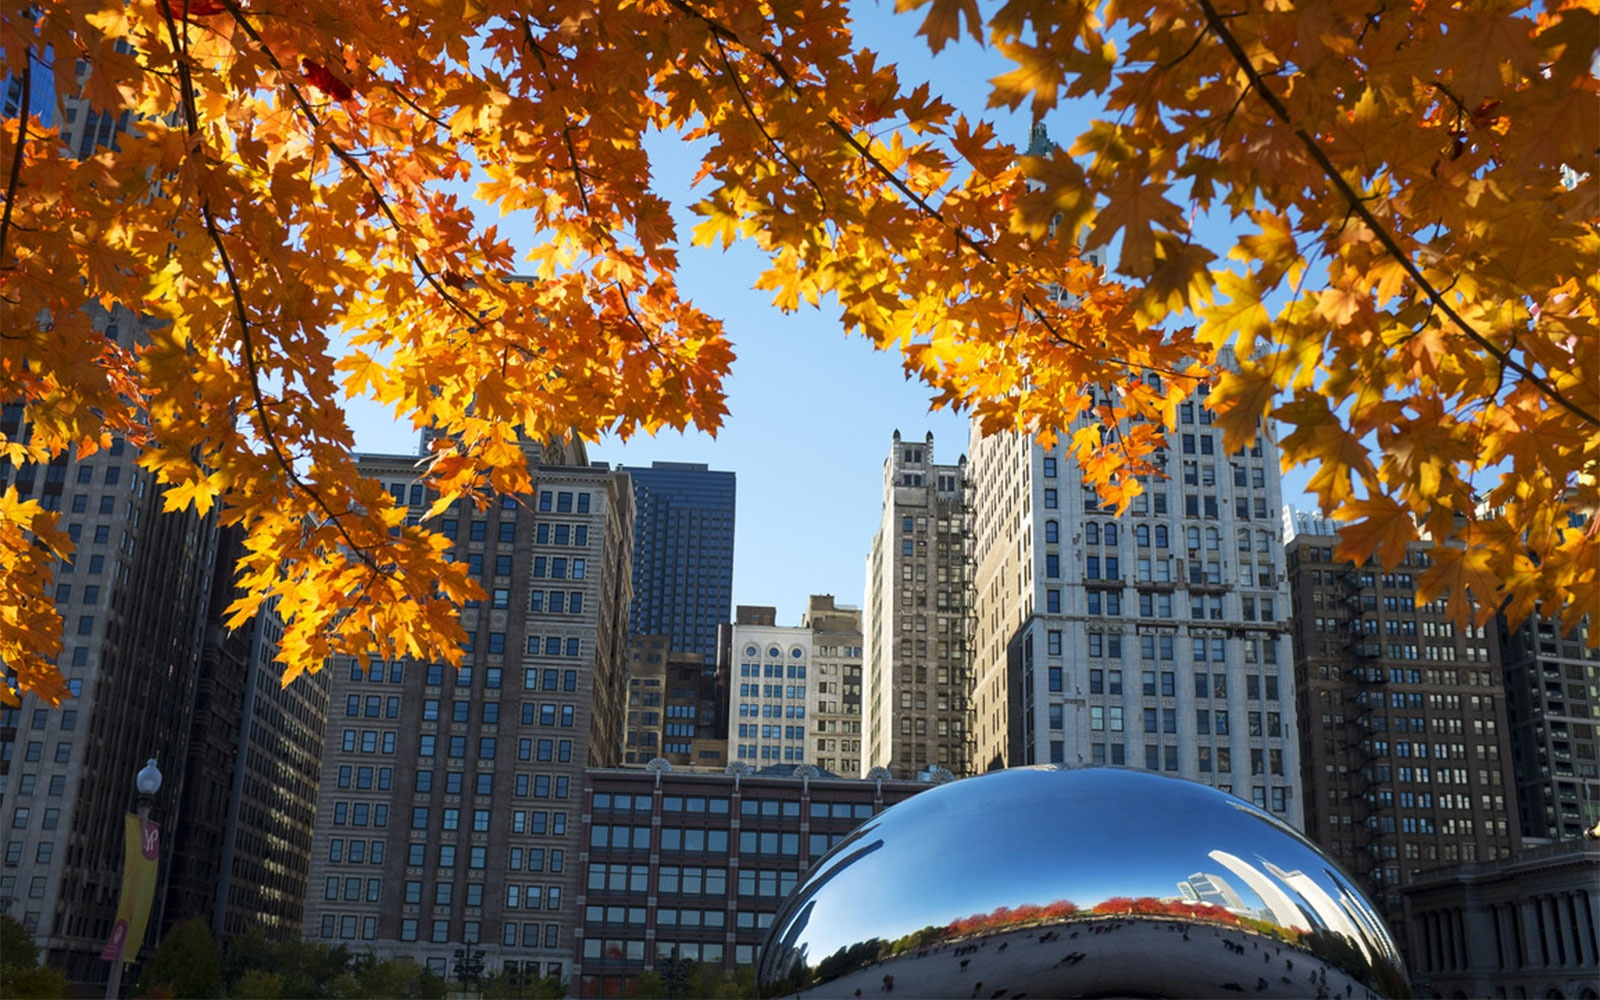 Chicago, Illinois in fall